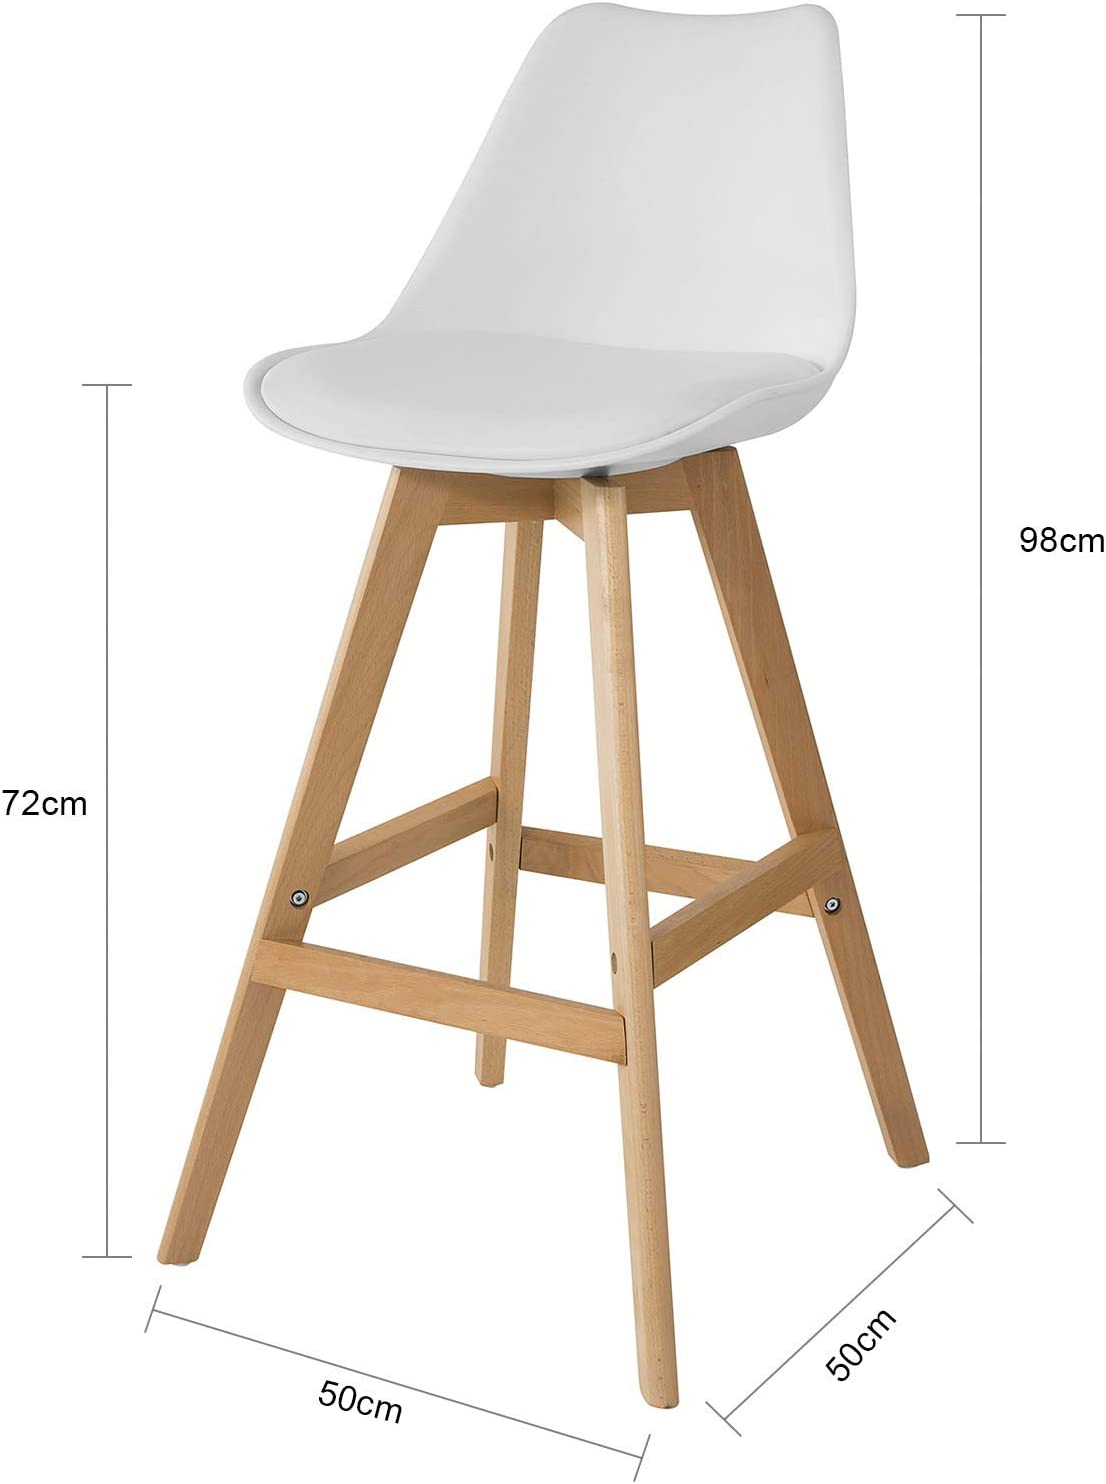 Bar Stools with PU Leather Padded Seat /& Beech Wood Legs SoBuy/® FST69-Wx2 Set of 2 Kitchen Breakfast Barstools